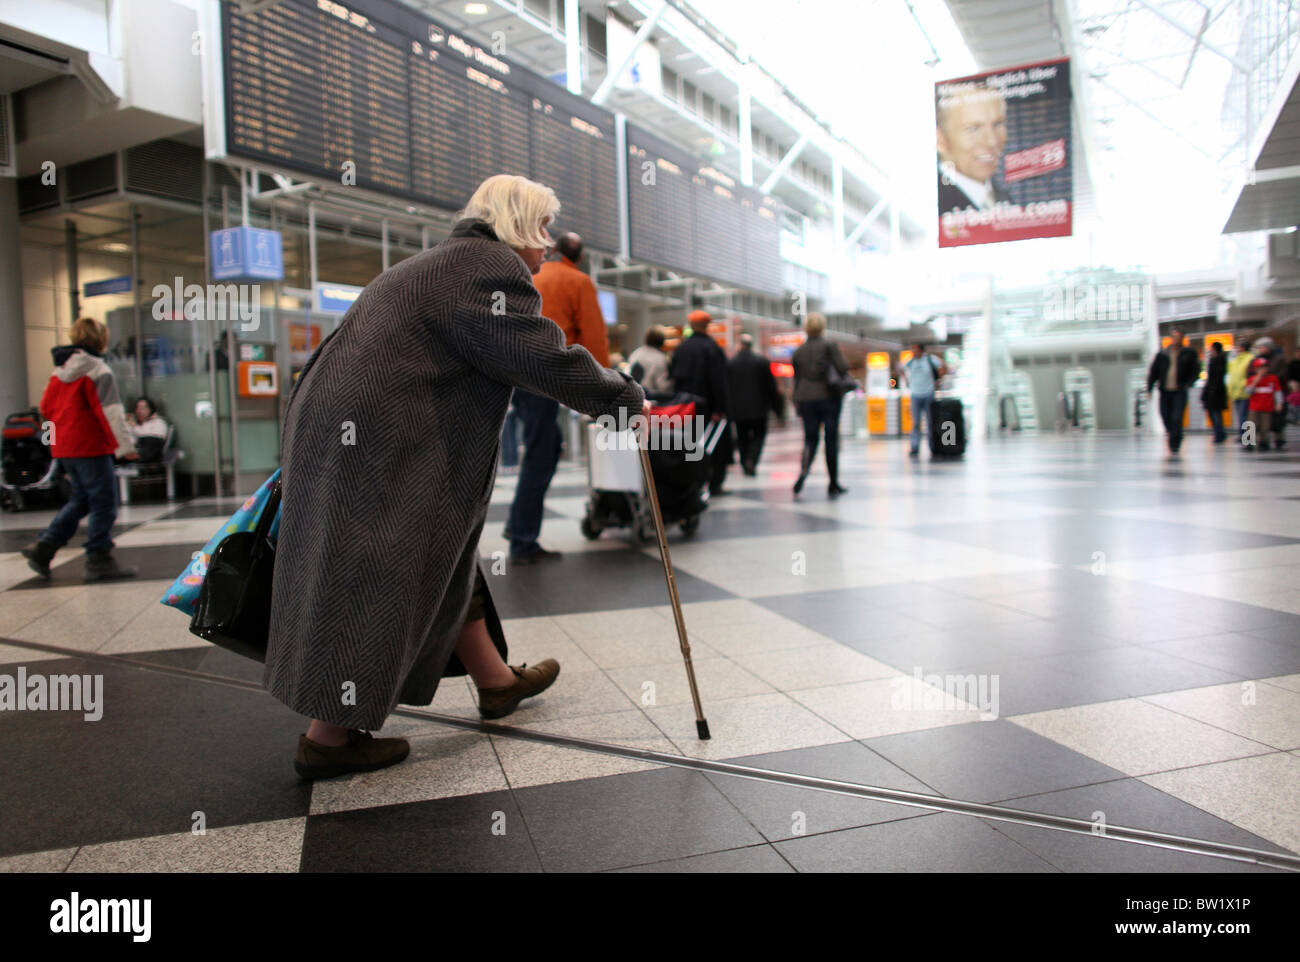 An old woman walking through the terminal of the Franz Josef Strauss Airport, Munich, Germany - Stock Image